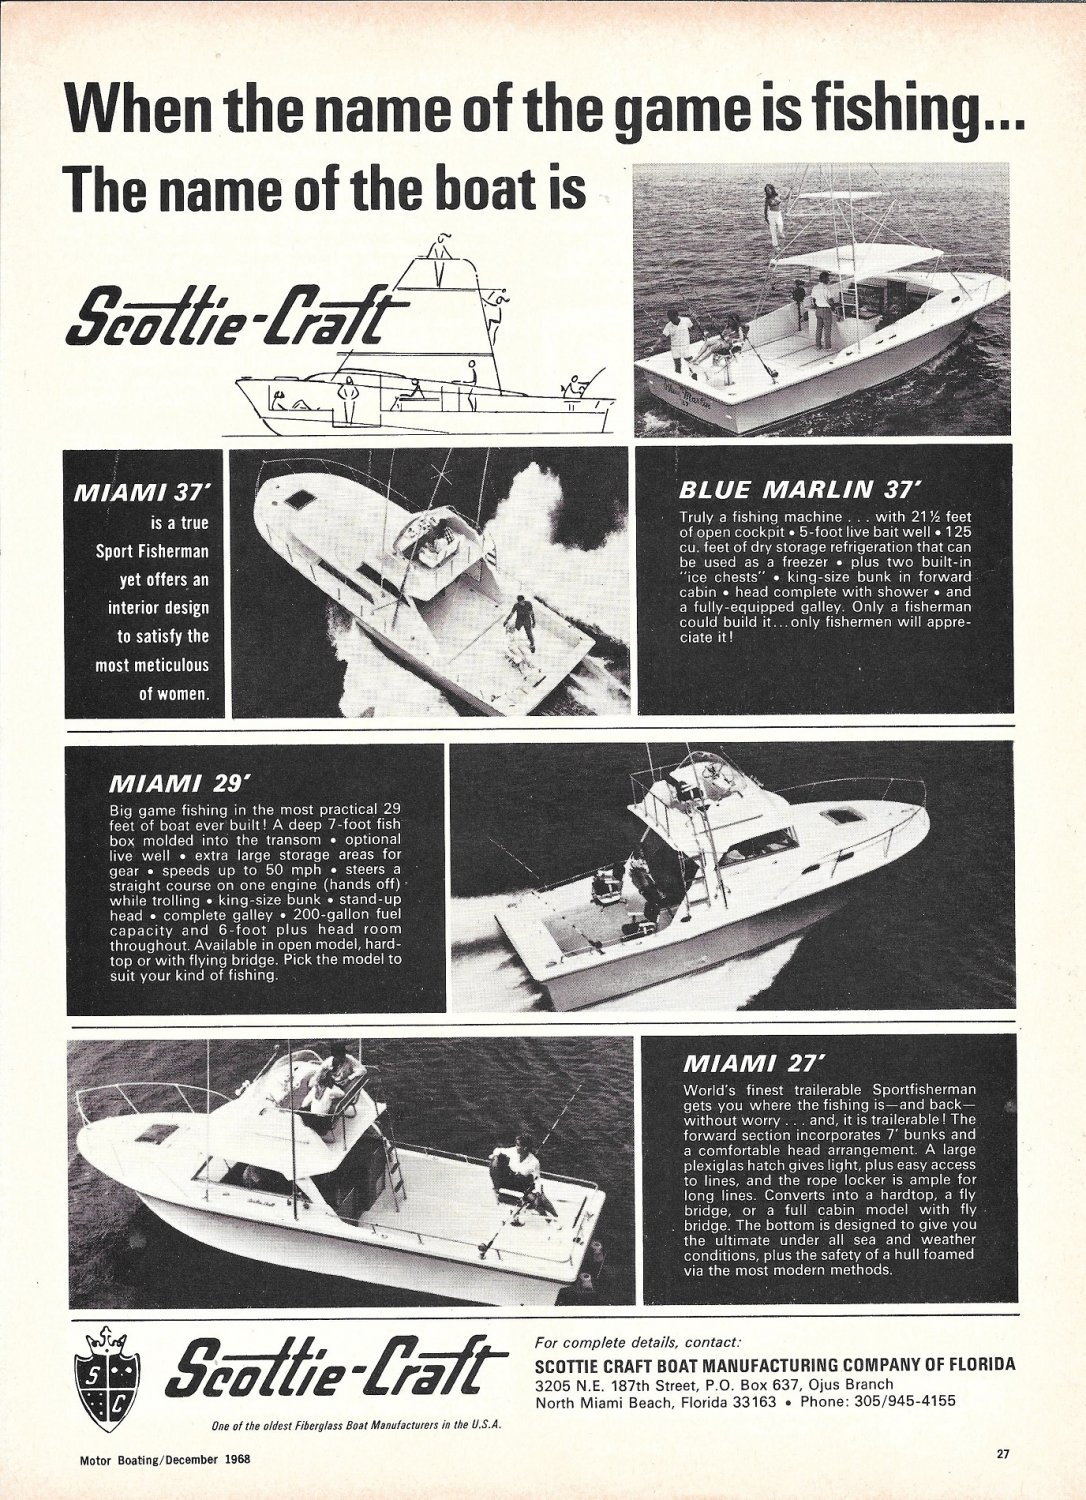 1969 Scottie- Craft Boats Ad- Photos of 4 Models